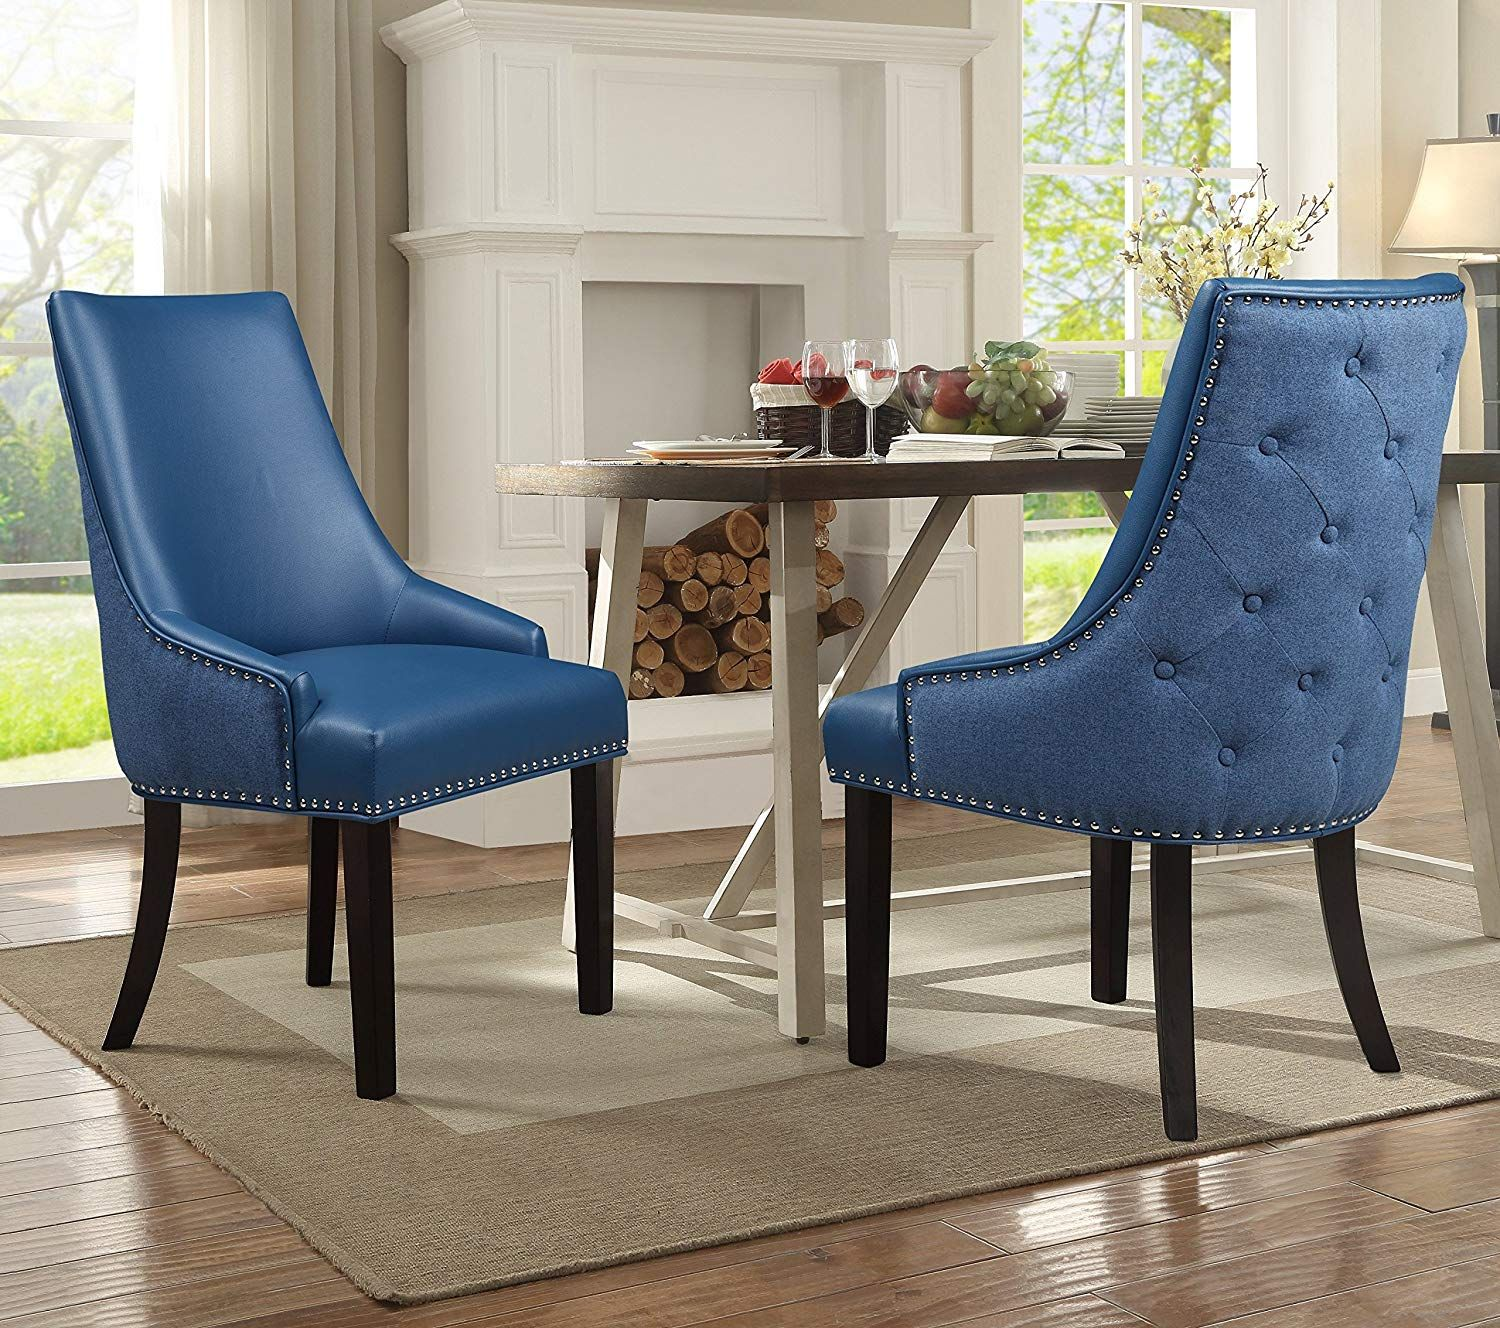 Iconic Home Brando Dining Side Accent Chair Pebble Grain Pu Leather Linen Upholstered Nailhead Trim T Dining Chair Upholstery Dining Chairs Linen Dining Chairs